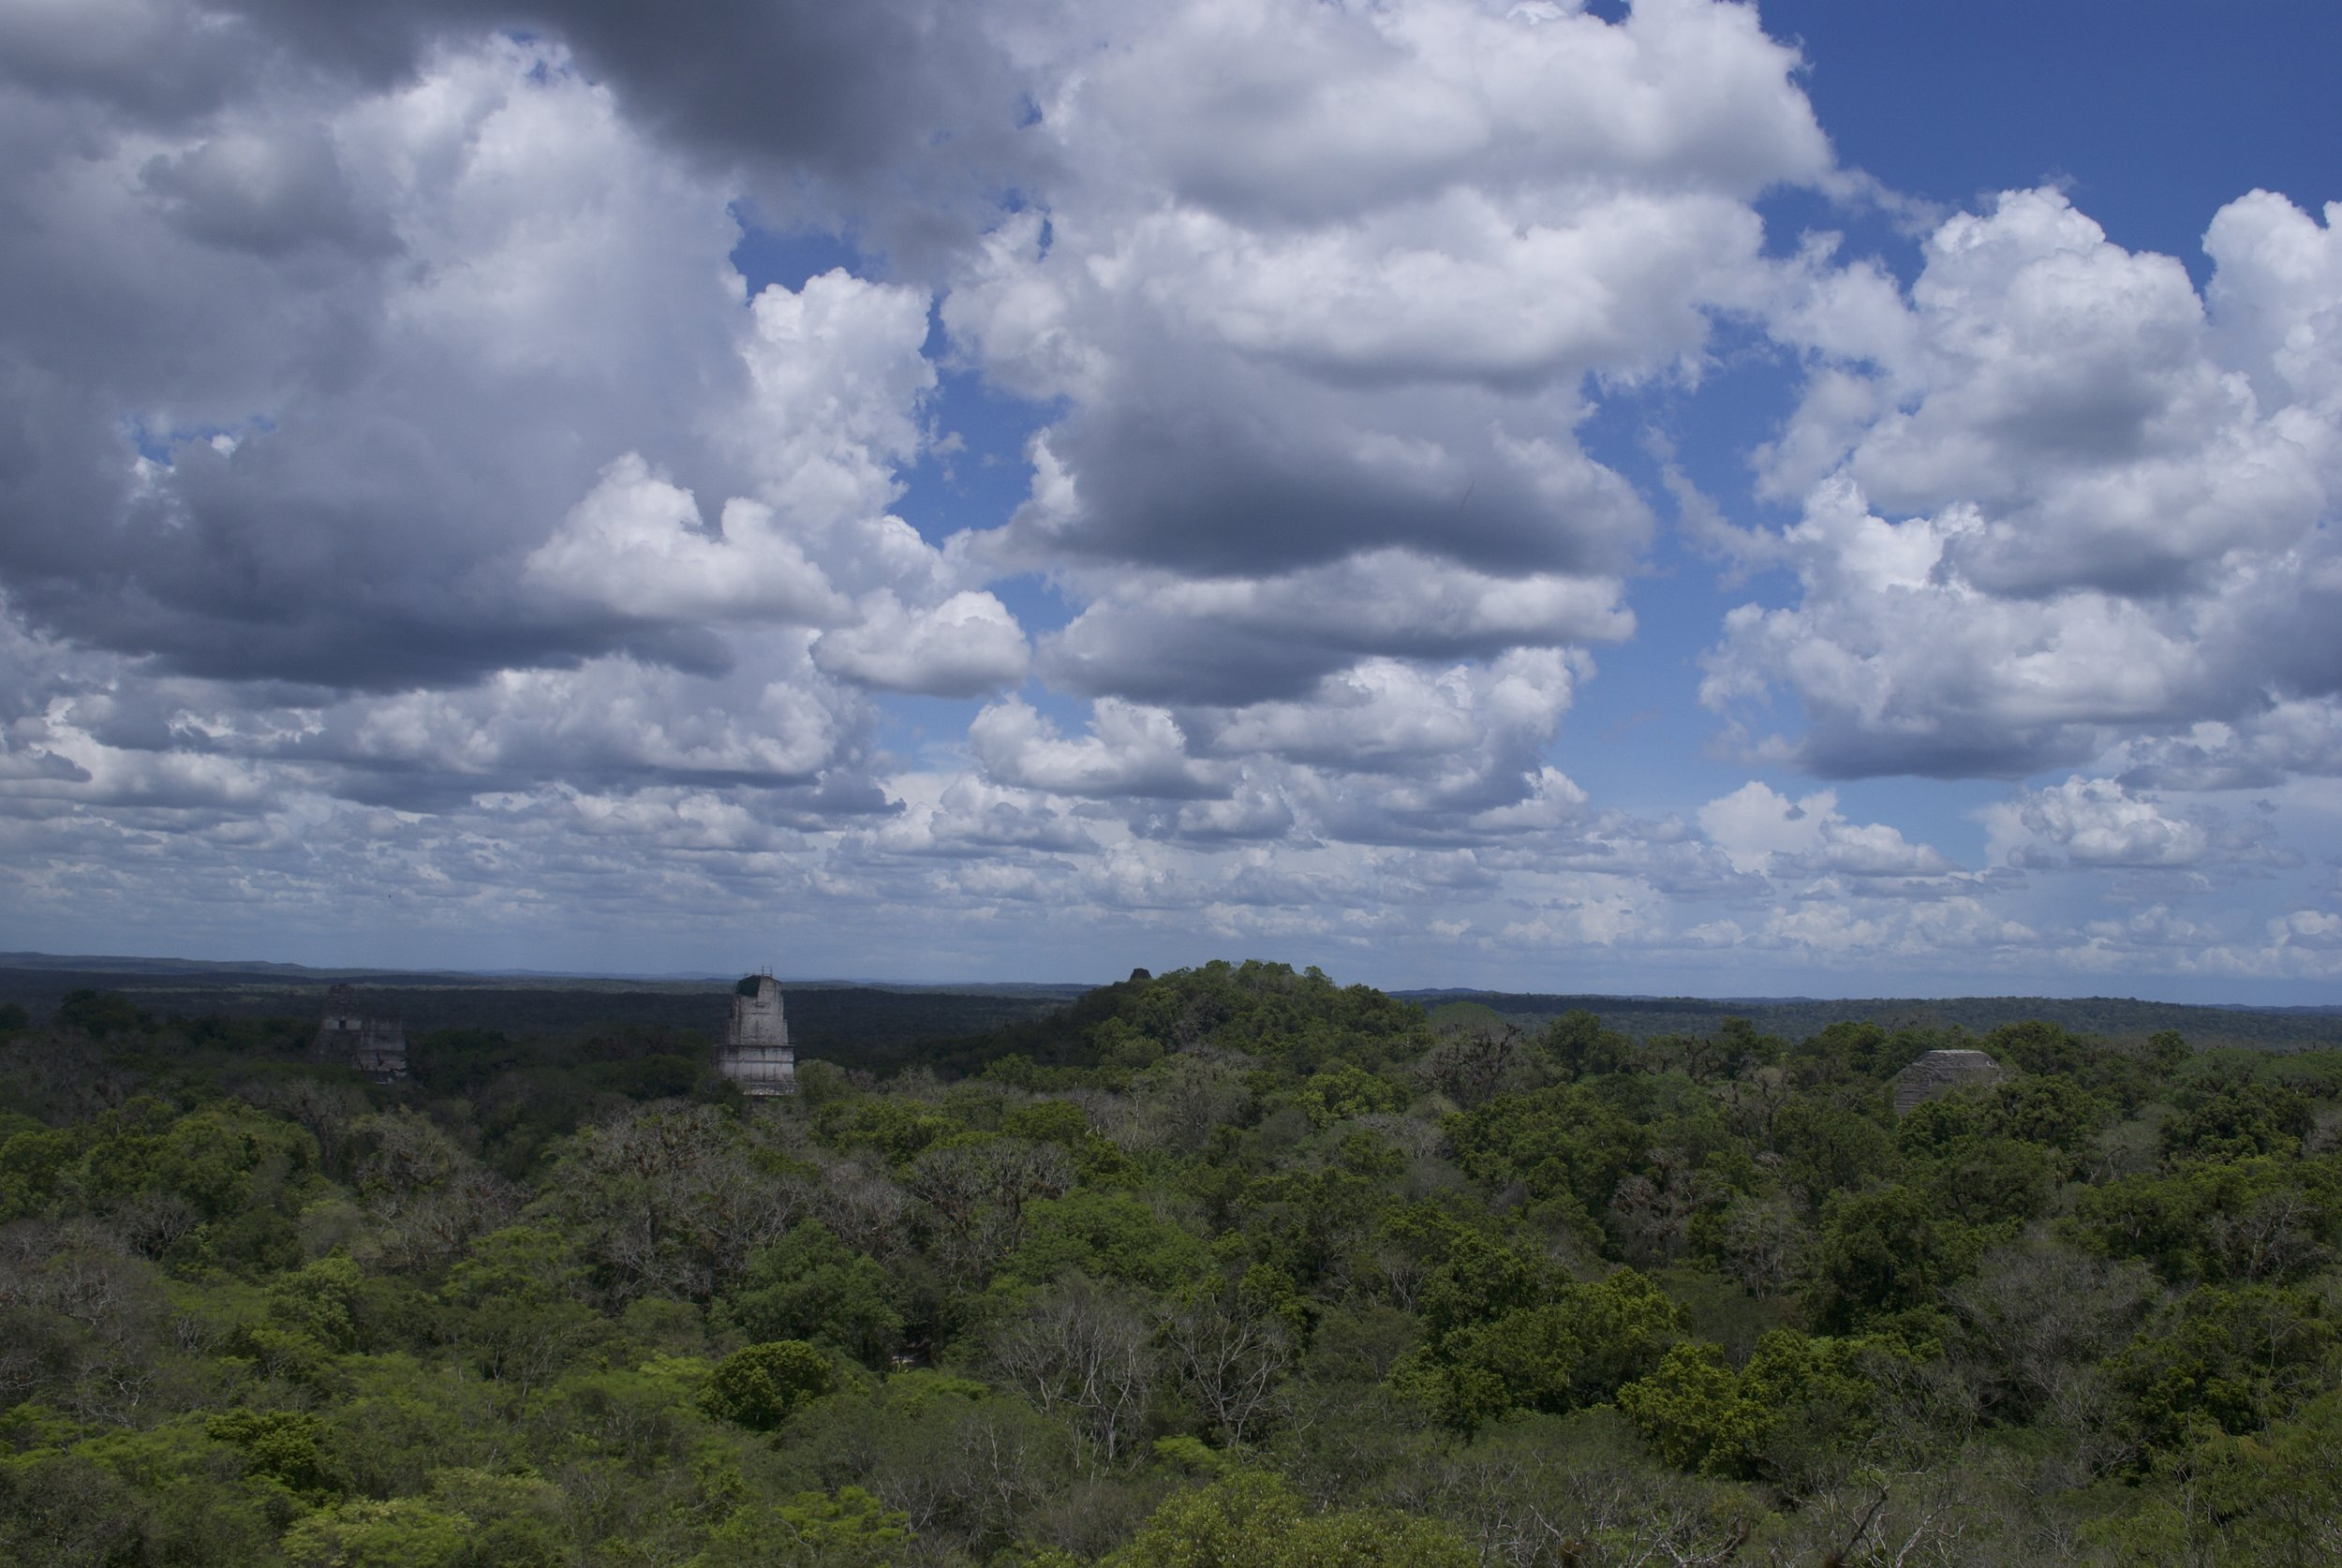 Spend all day at Tikal, having a picnic lunch and climbing to the top of the temples for a great view